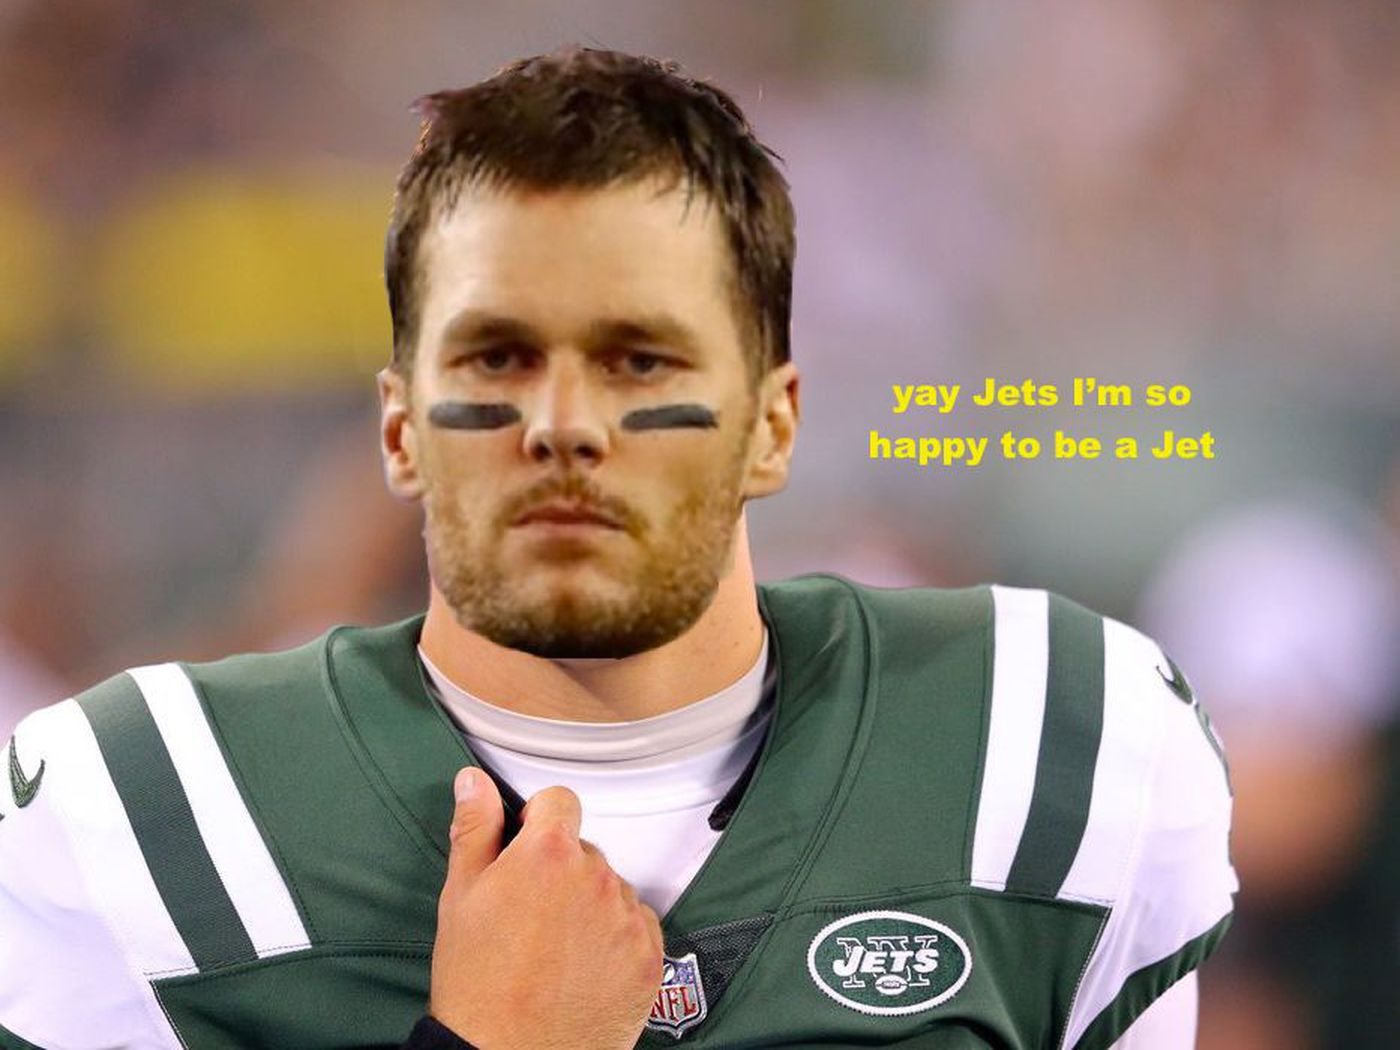 The Jets had a chance to draft Tom Brady in 2000. What if they had ...